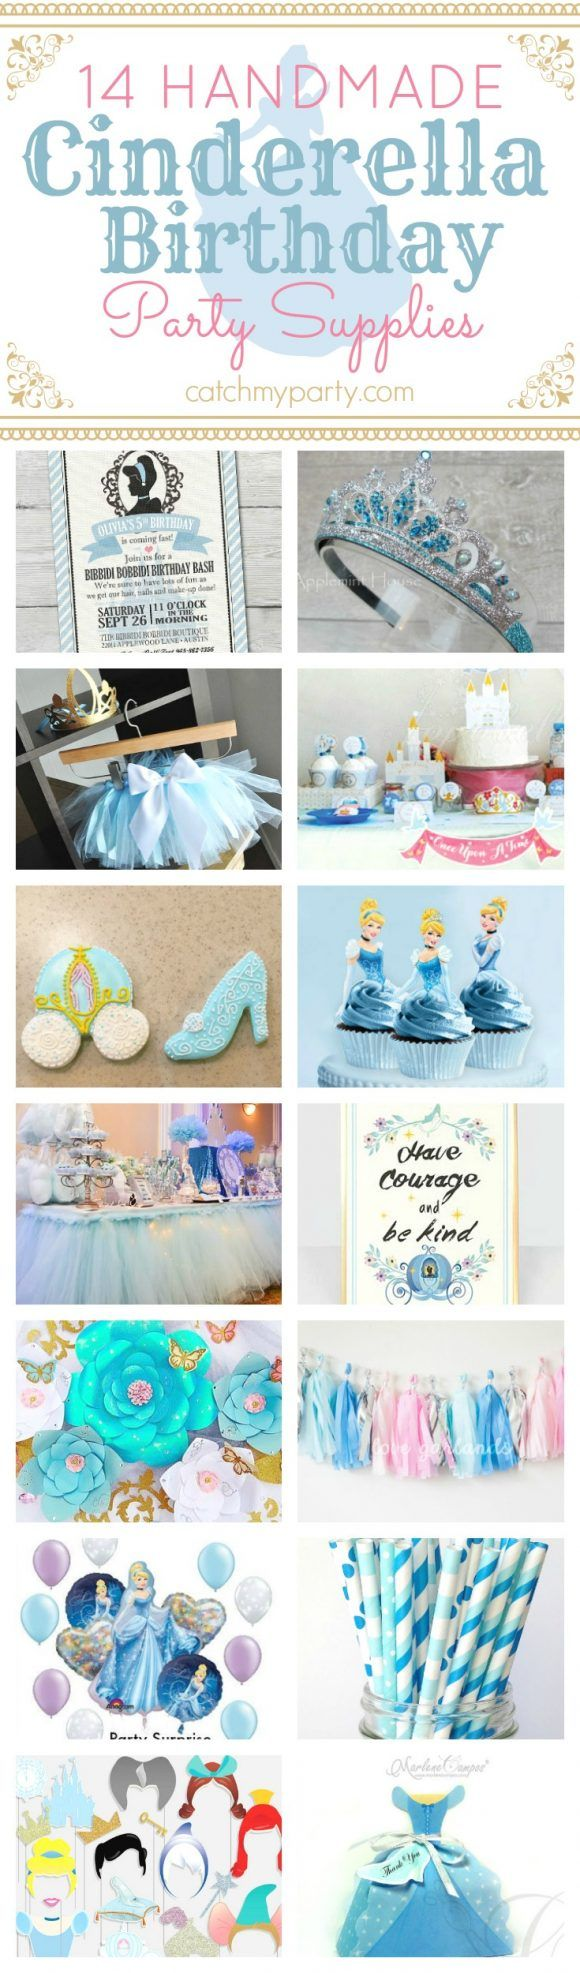 Don't miss these gorgeous 14 Handmade Cinderella birthday party supplies. Perfect if you are planning a Cinderella themed party! See more party ideas and share yours at CatchMyparty.com